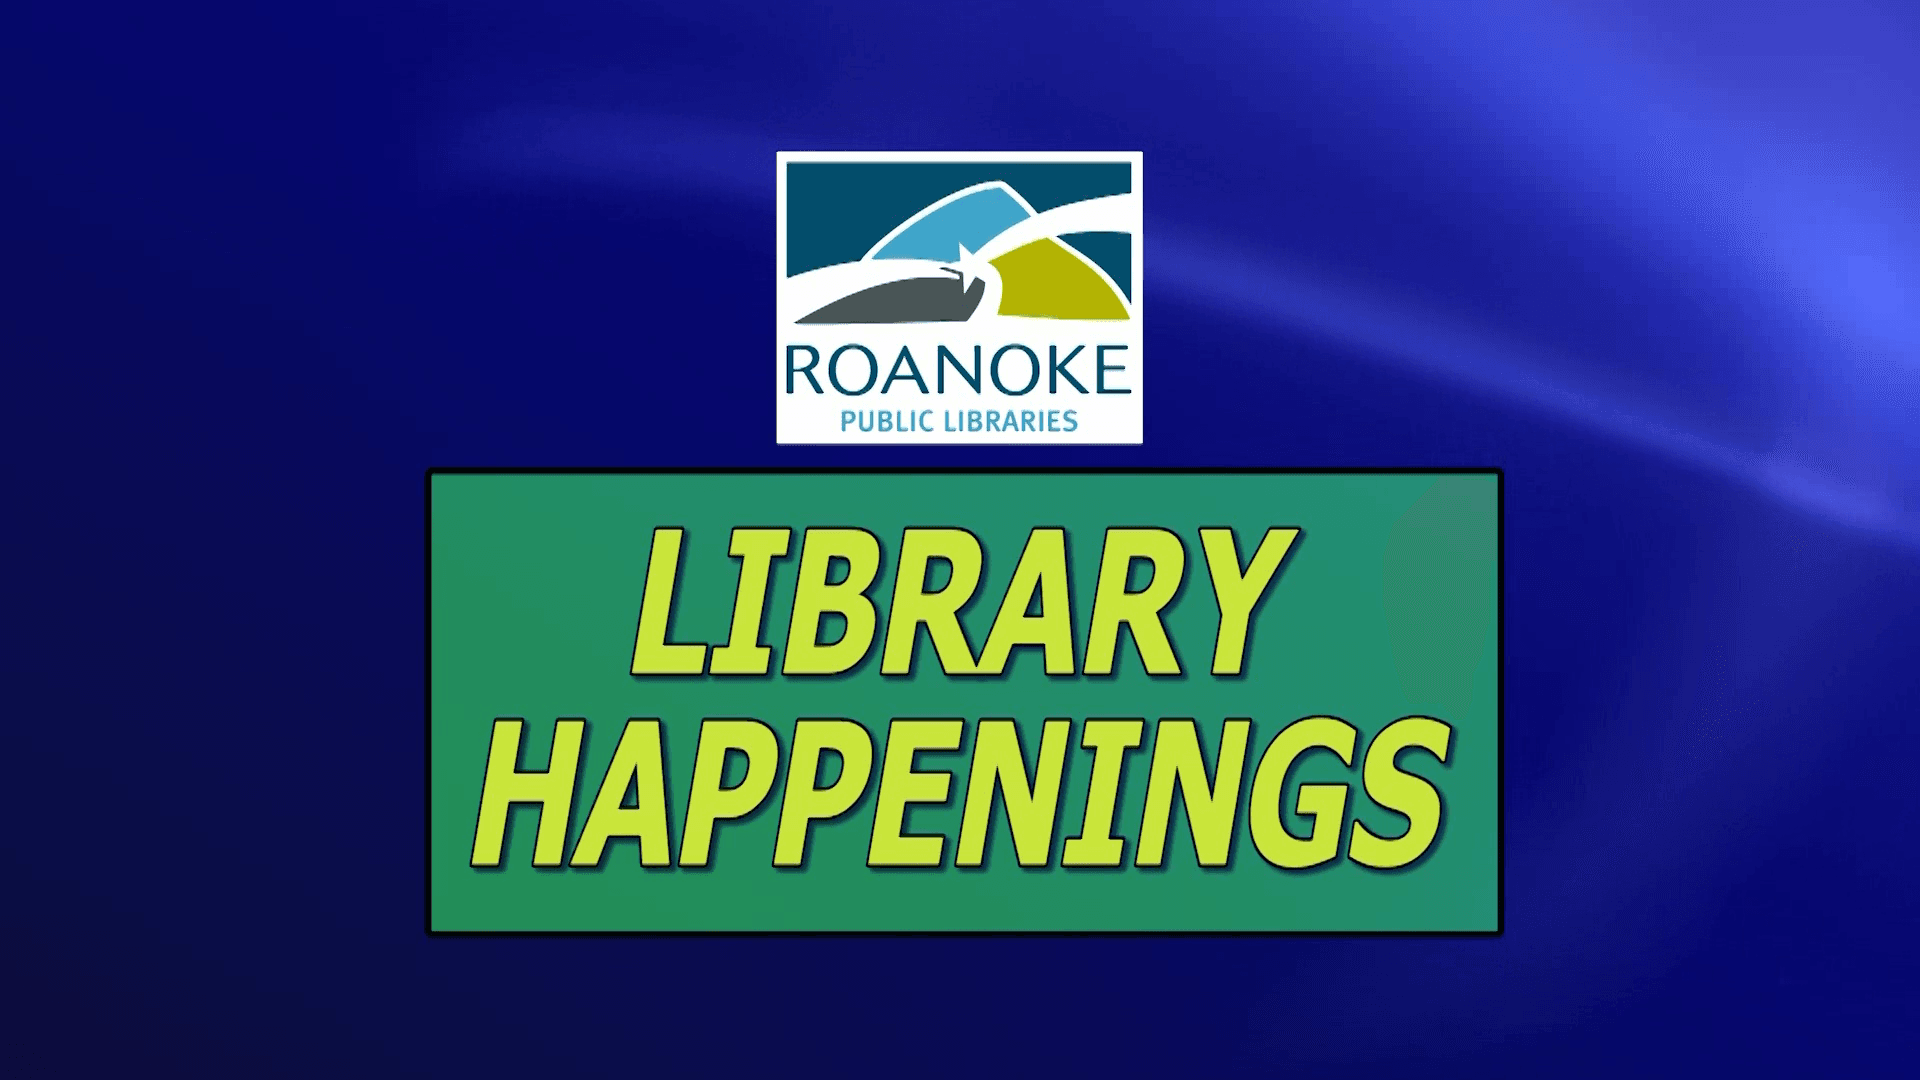 Library Happenings Tex and Roanoke City Public Libraries Logo